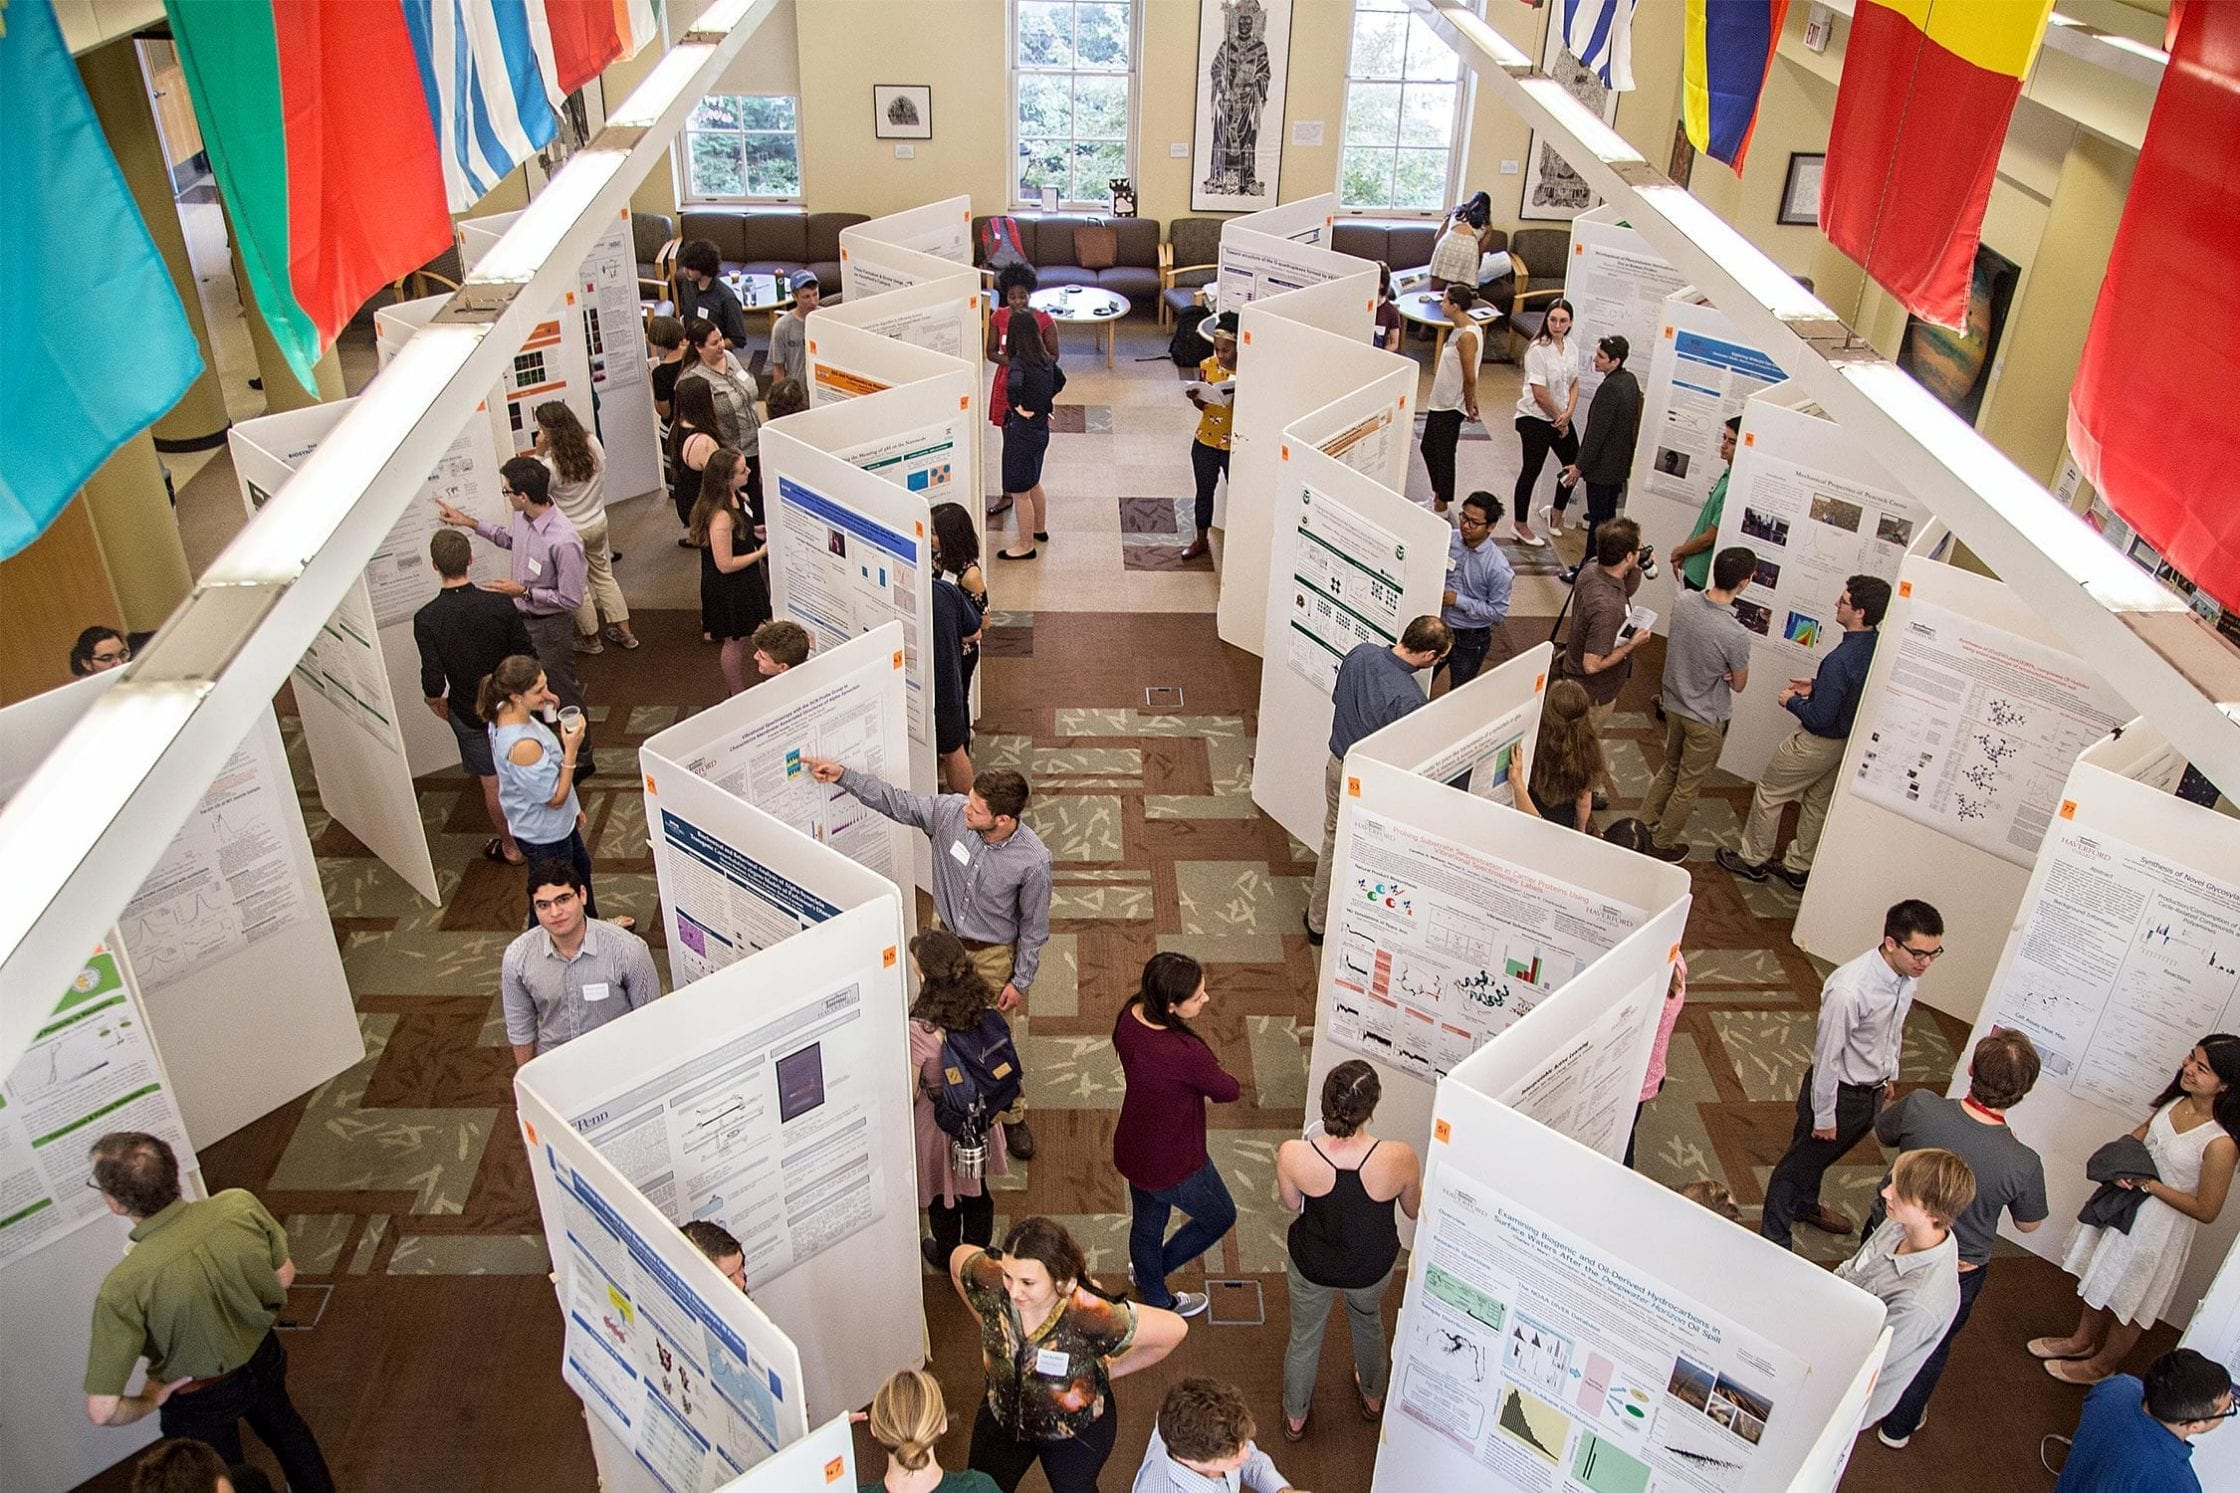 Students at a poster presentation